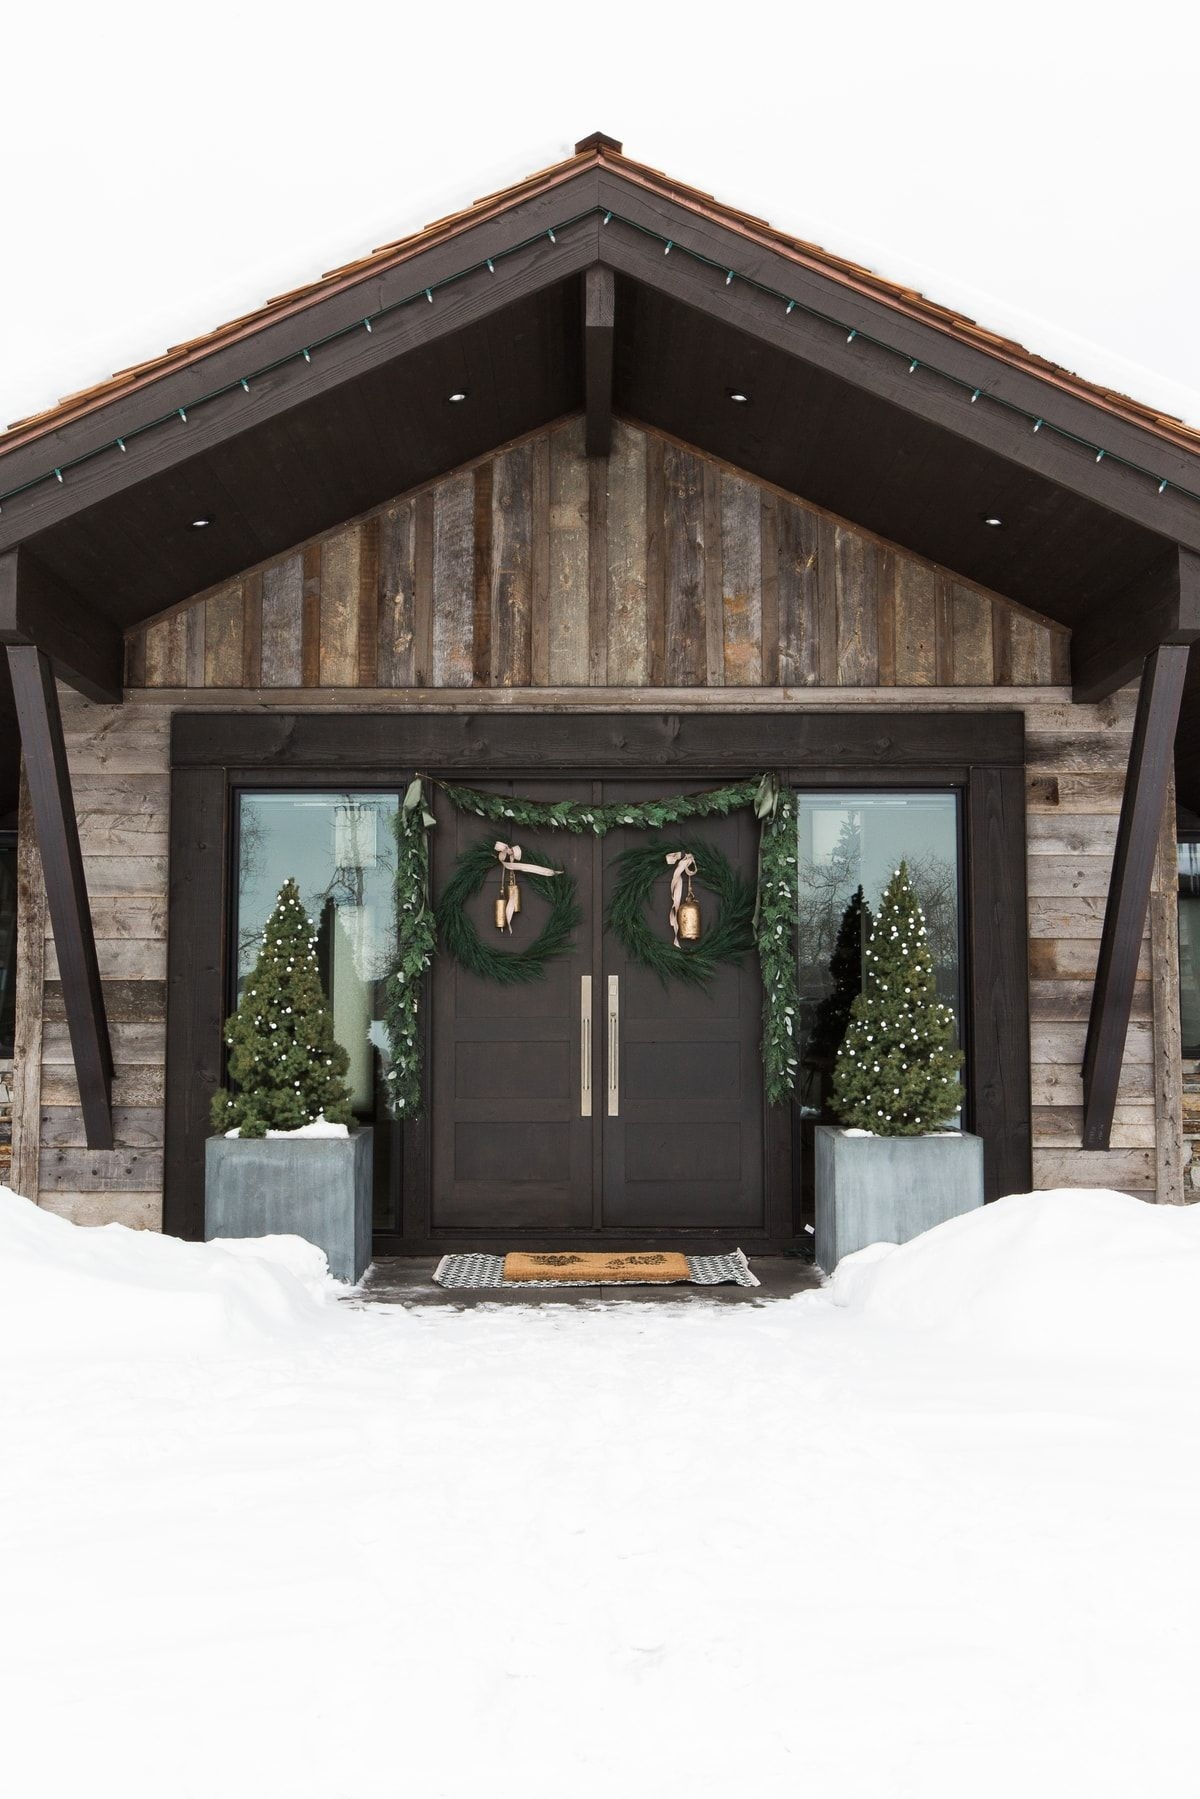 72 Mountain Chalet House Plans Unique A Very Mountain Home Christmas West